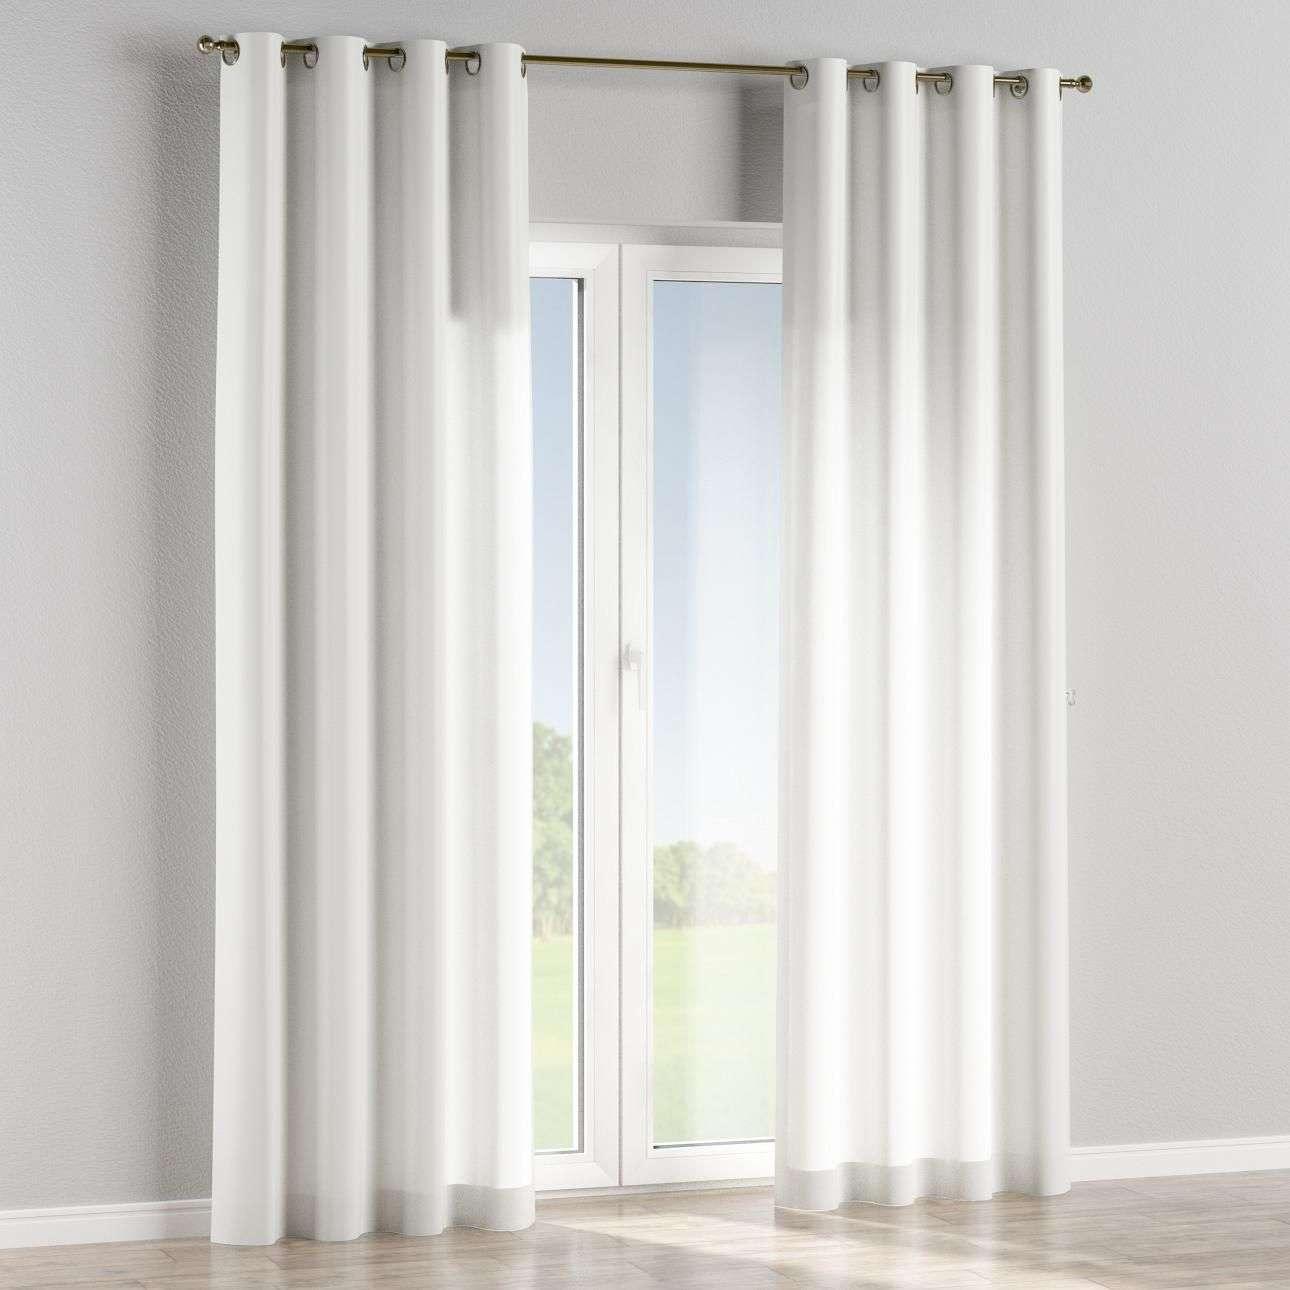 Eyelet lined curtains in collection Norge, fabric: 140-80